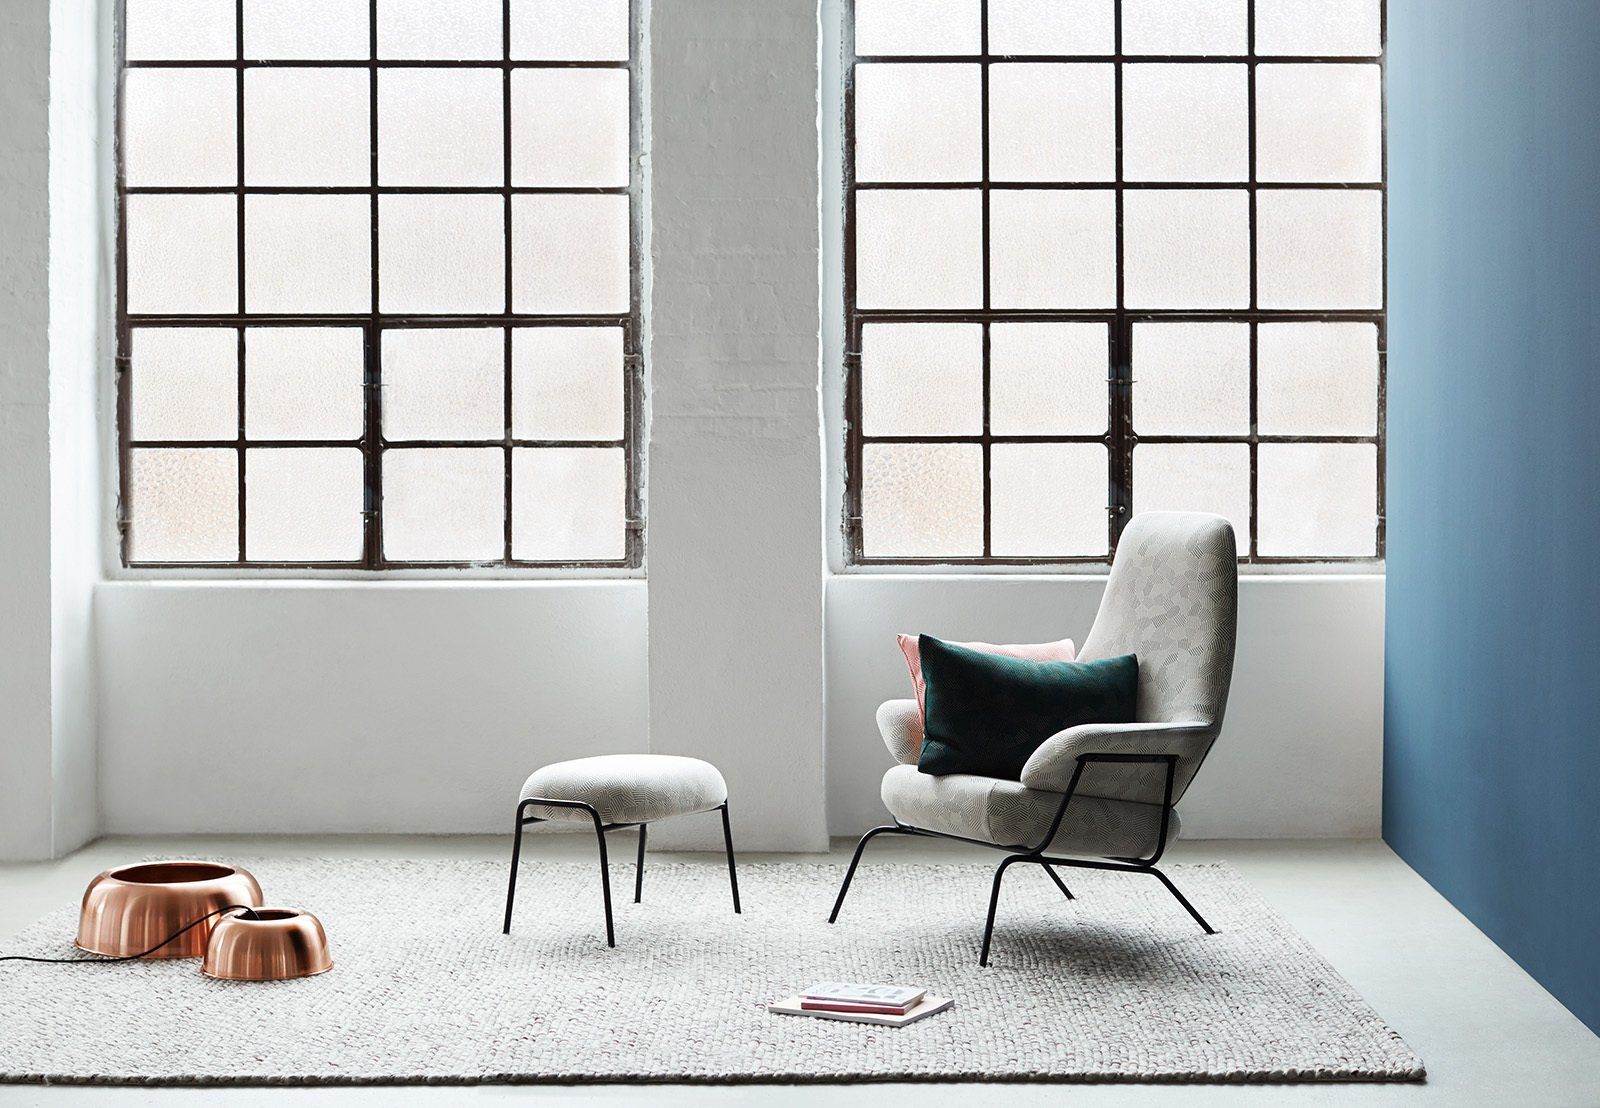 #seatingdesign #seating #Hai #chair #livingroom #window #rug #light #blue #copper #LucaNichetto #minimalist #modern #interior #inside #indoor  100+ Best Modern Seating Designs by Dwell